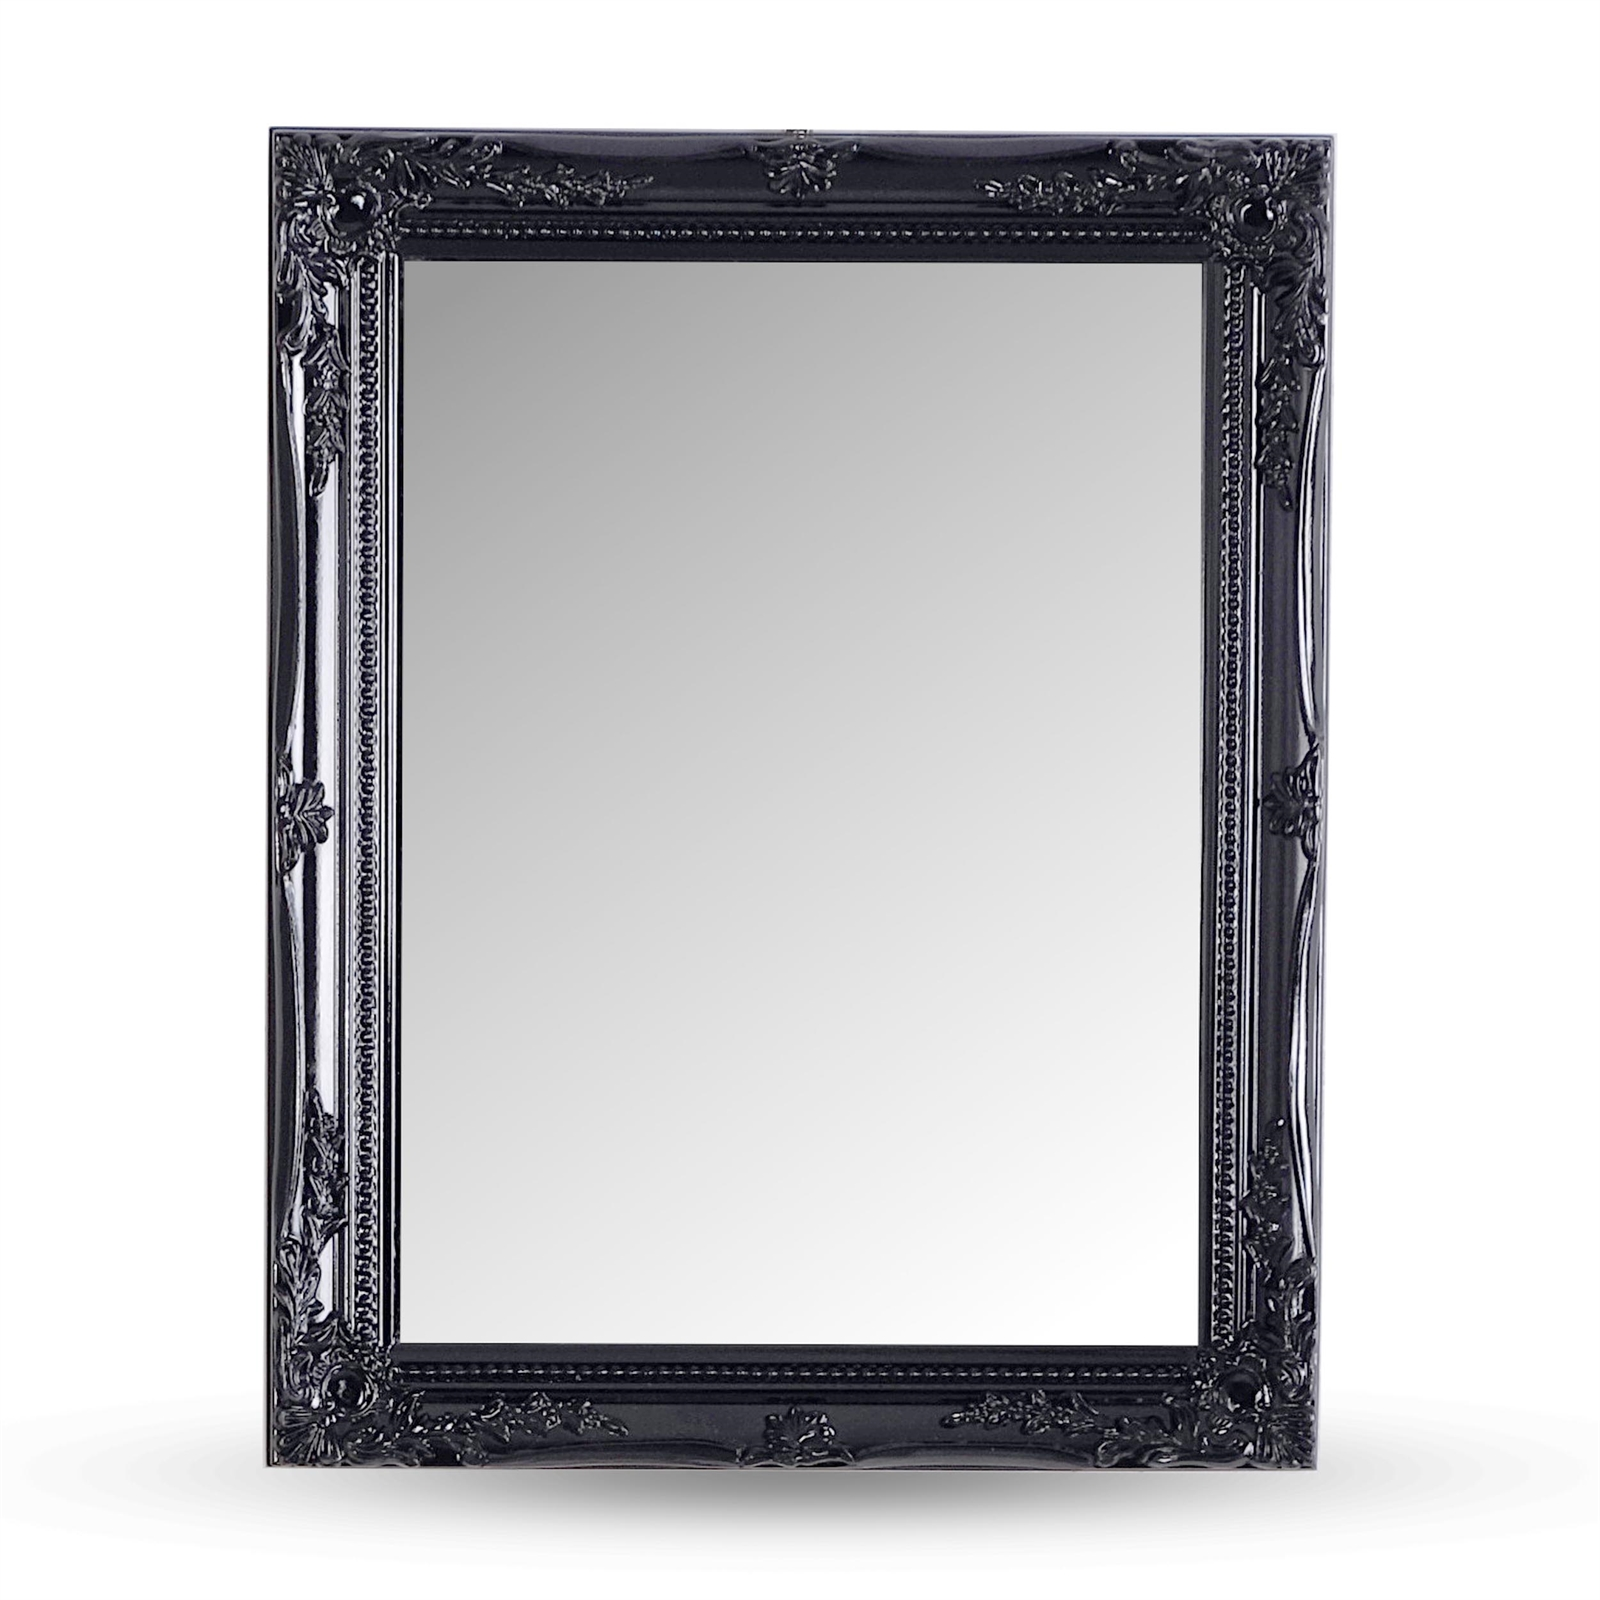 Baroque wall mirror black carved wood antique for Baroque style wall mirror